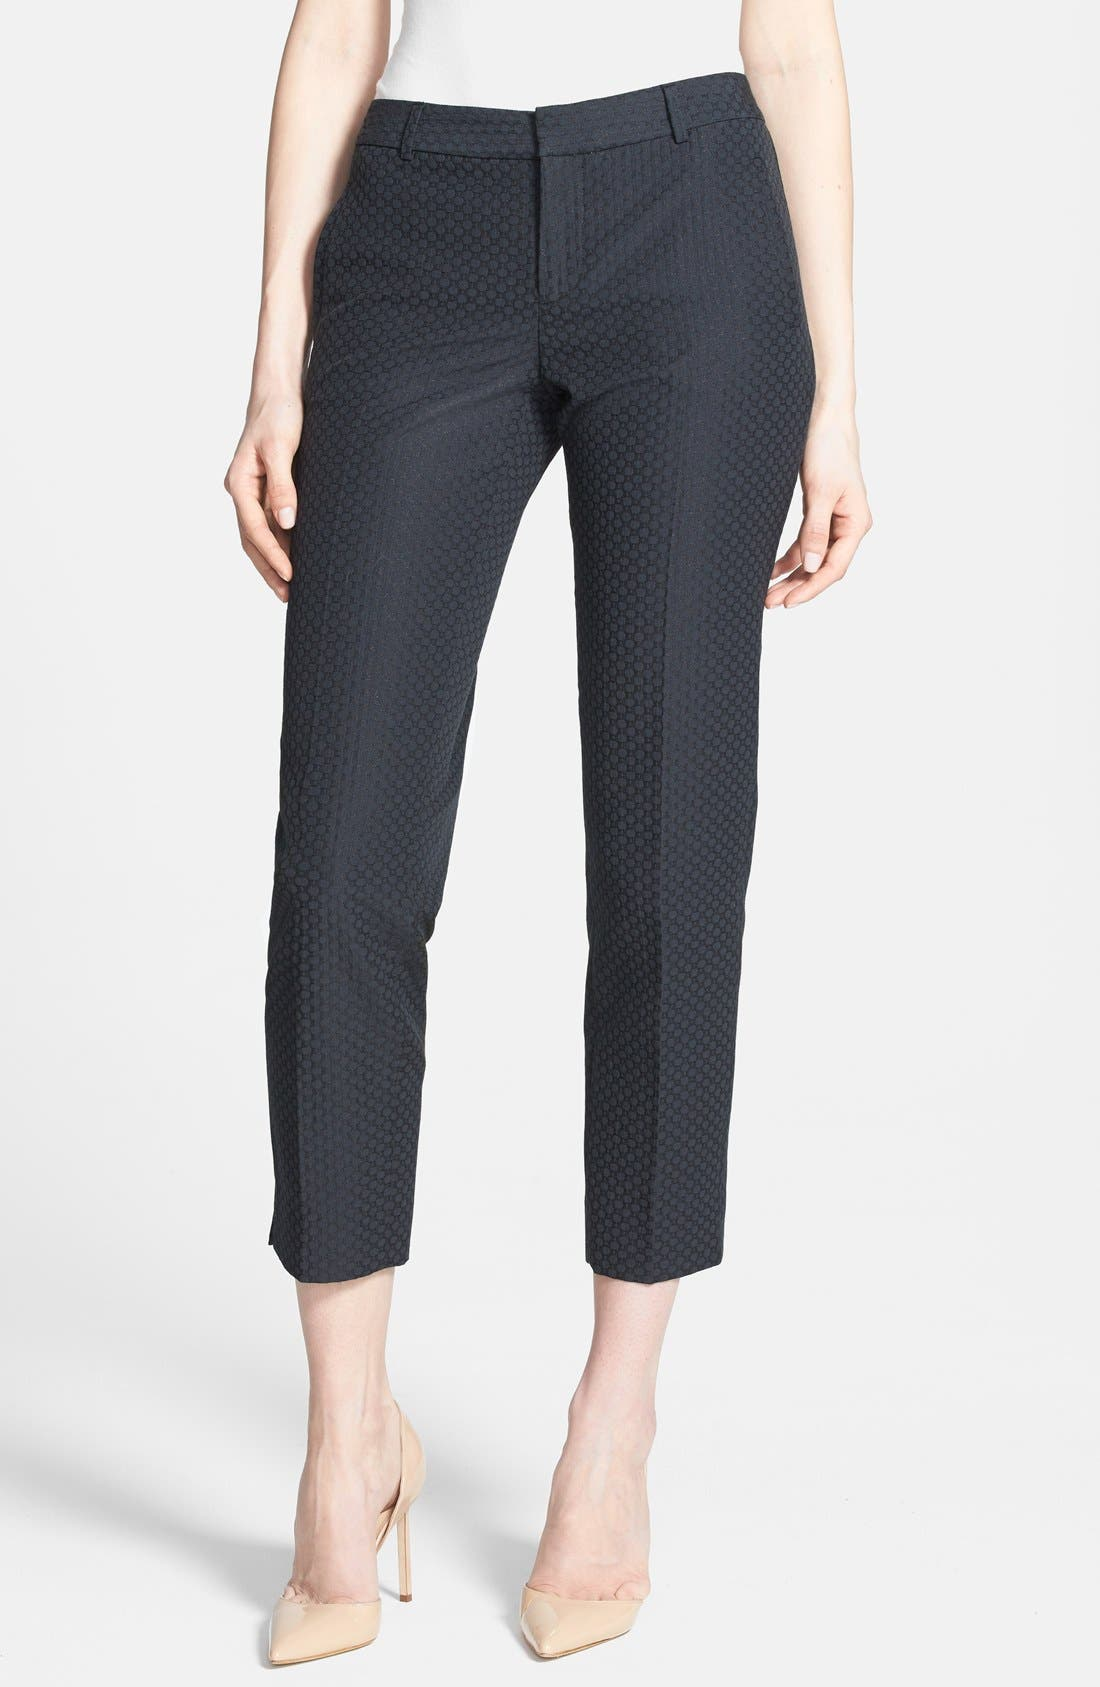 Alternate Image 1 Selected - Chelsea28 Slim Jacquard Crop Pants